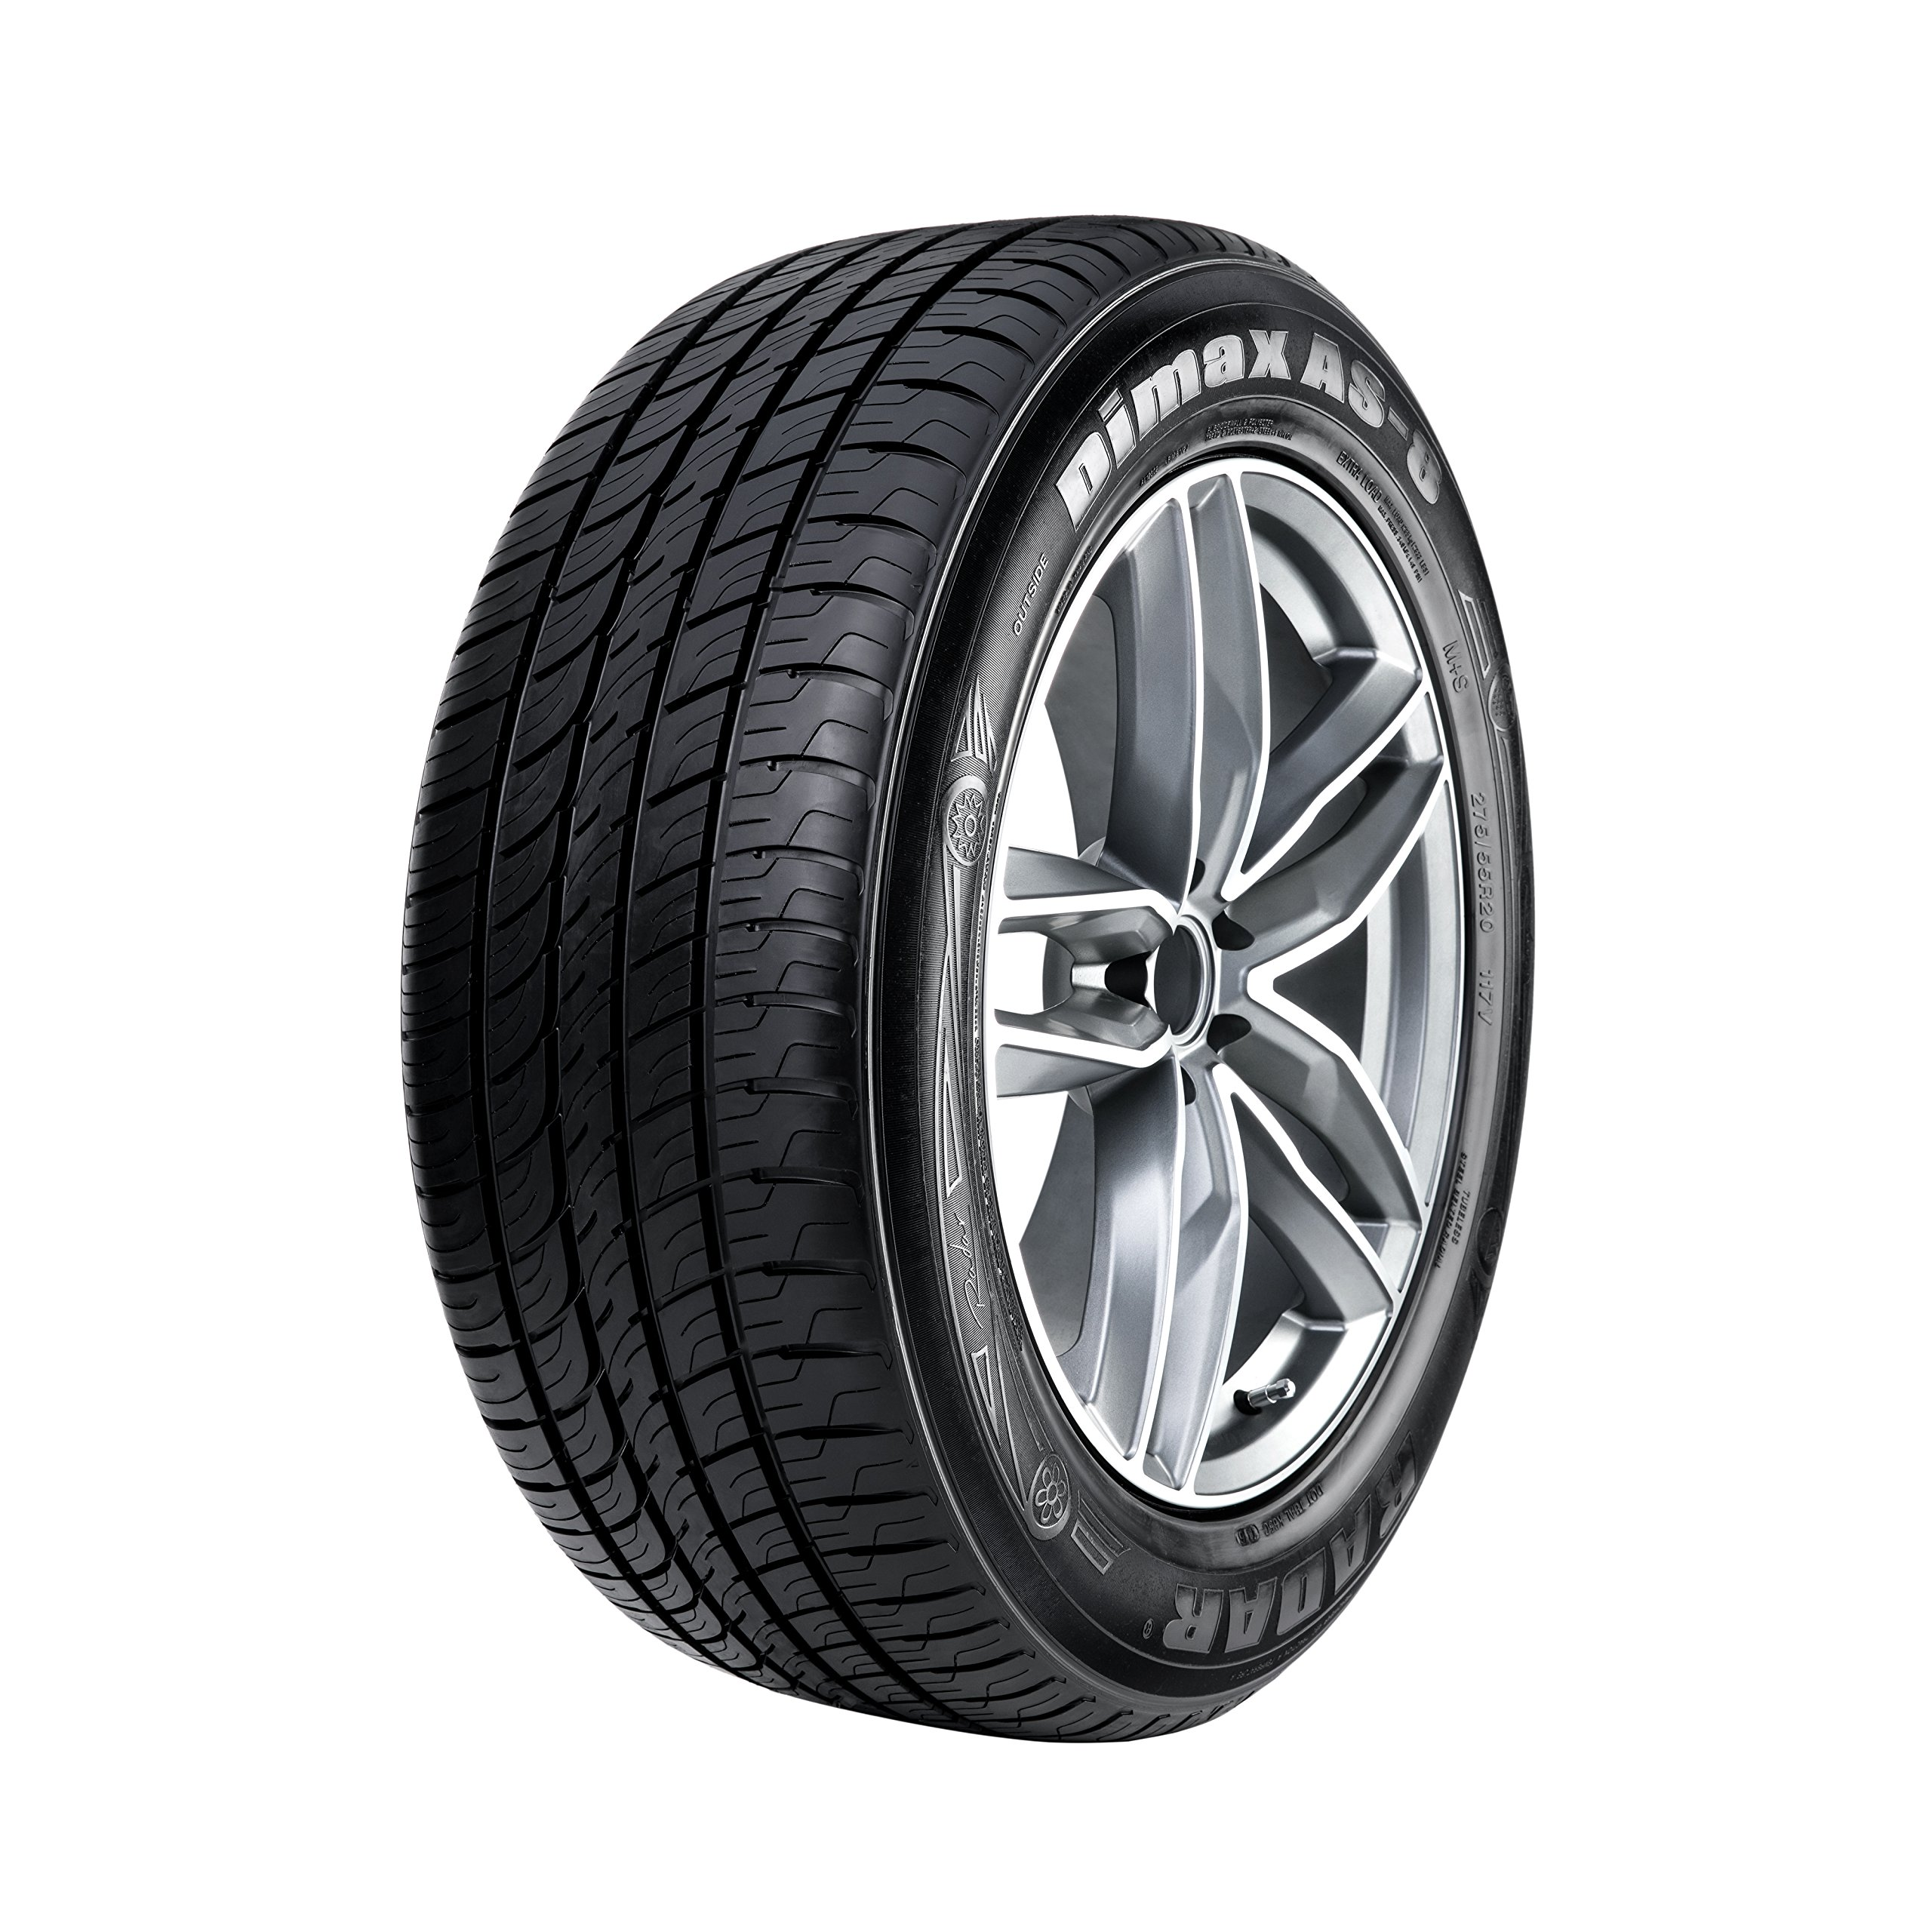 Radar Tires Dimax AS-8 Touring Radial Tire - 205/55R16 91V by Radar Tires